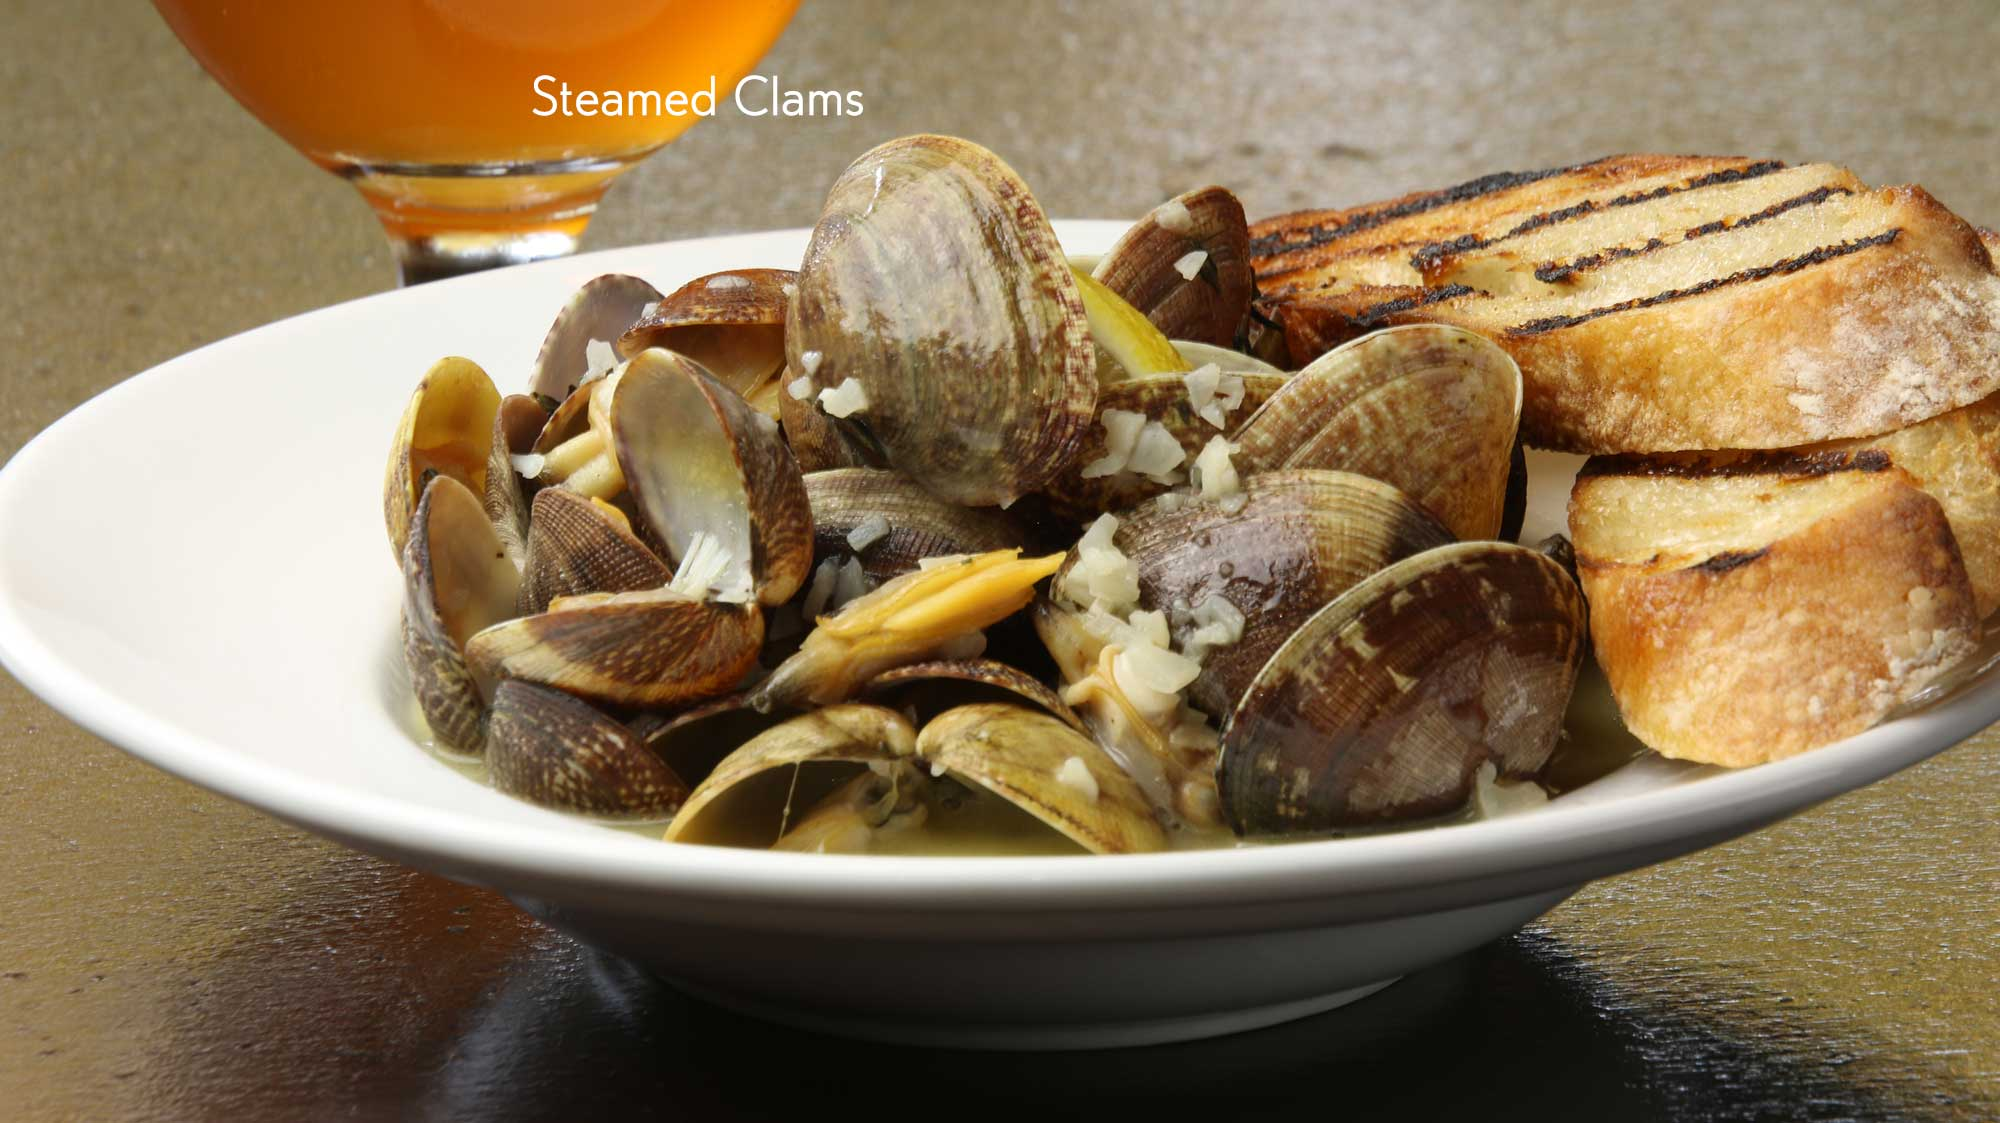 Steamed-Clams-olaf-Ballard.jpg